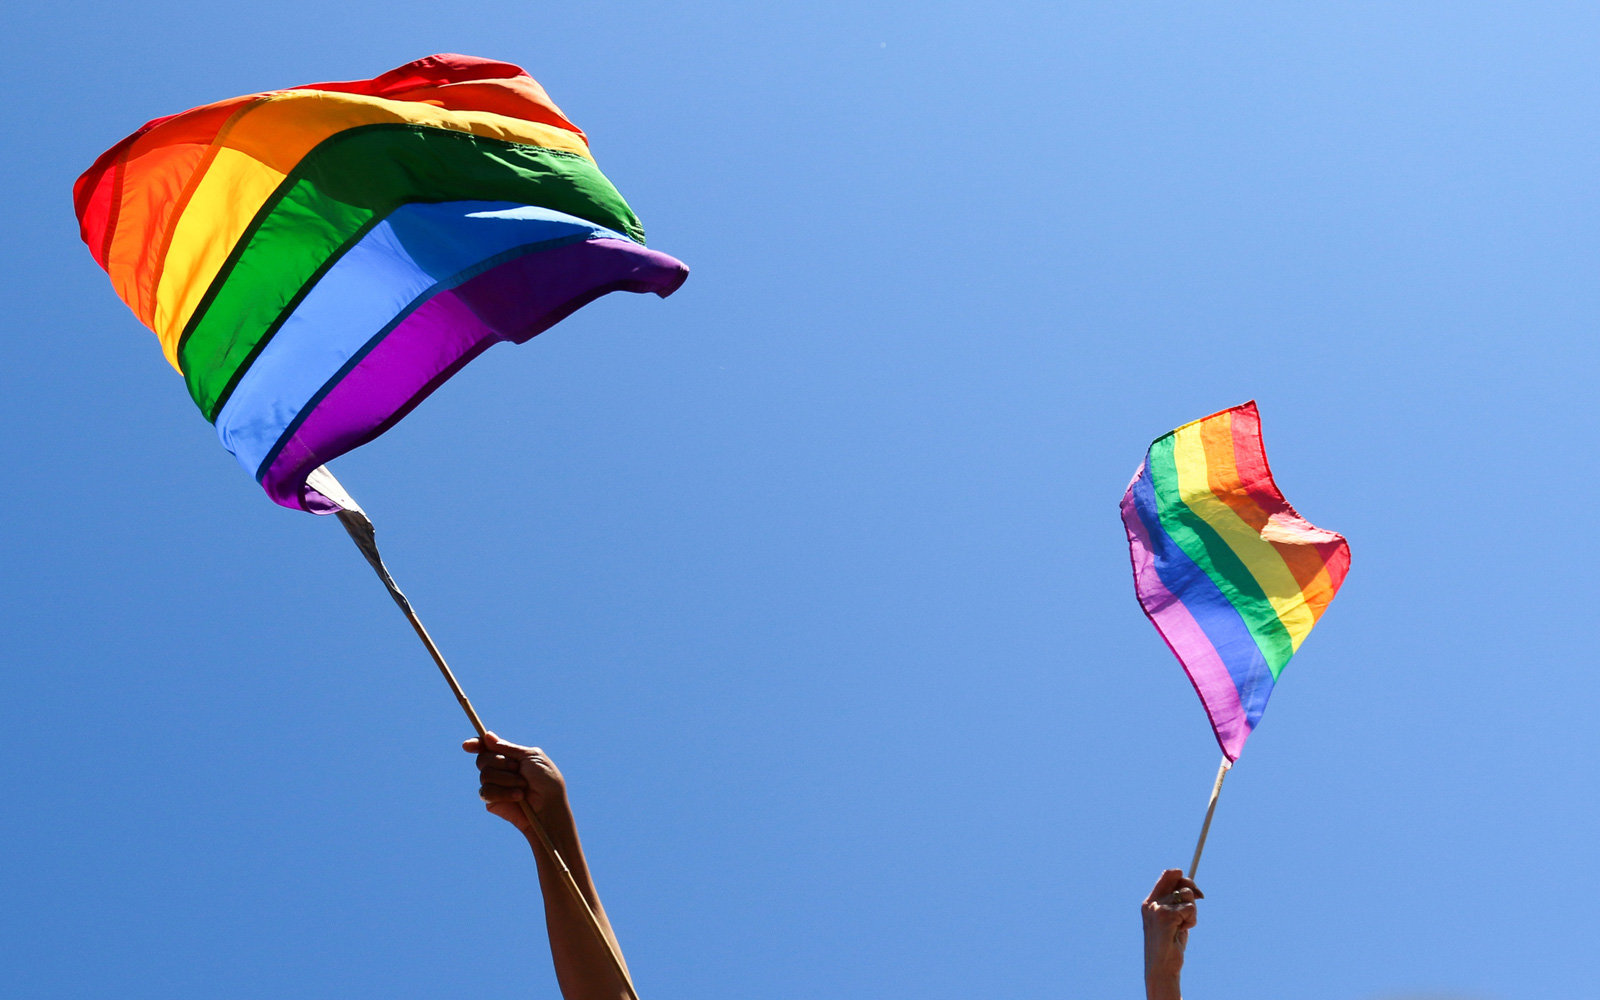 Bermuda Will Host Its First Pride Parade This Year